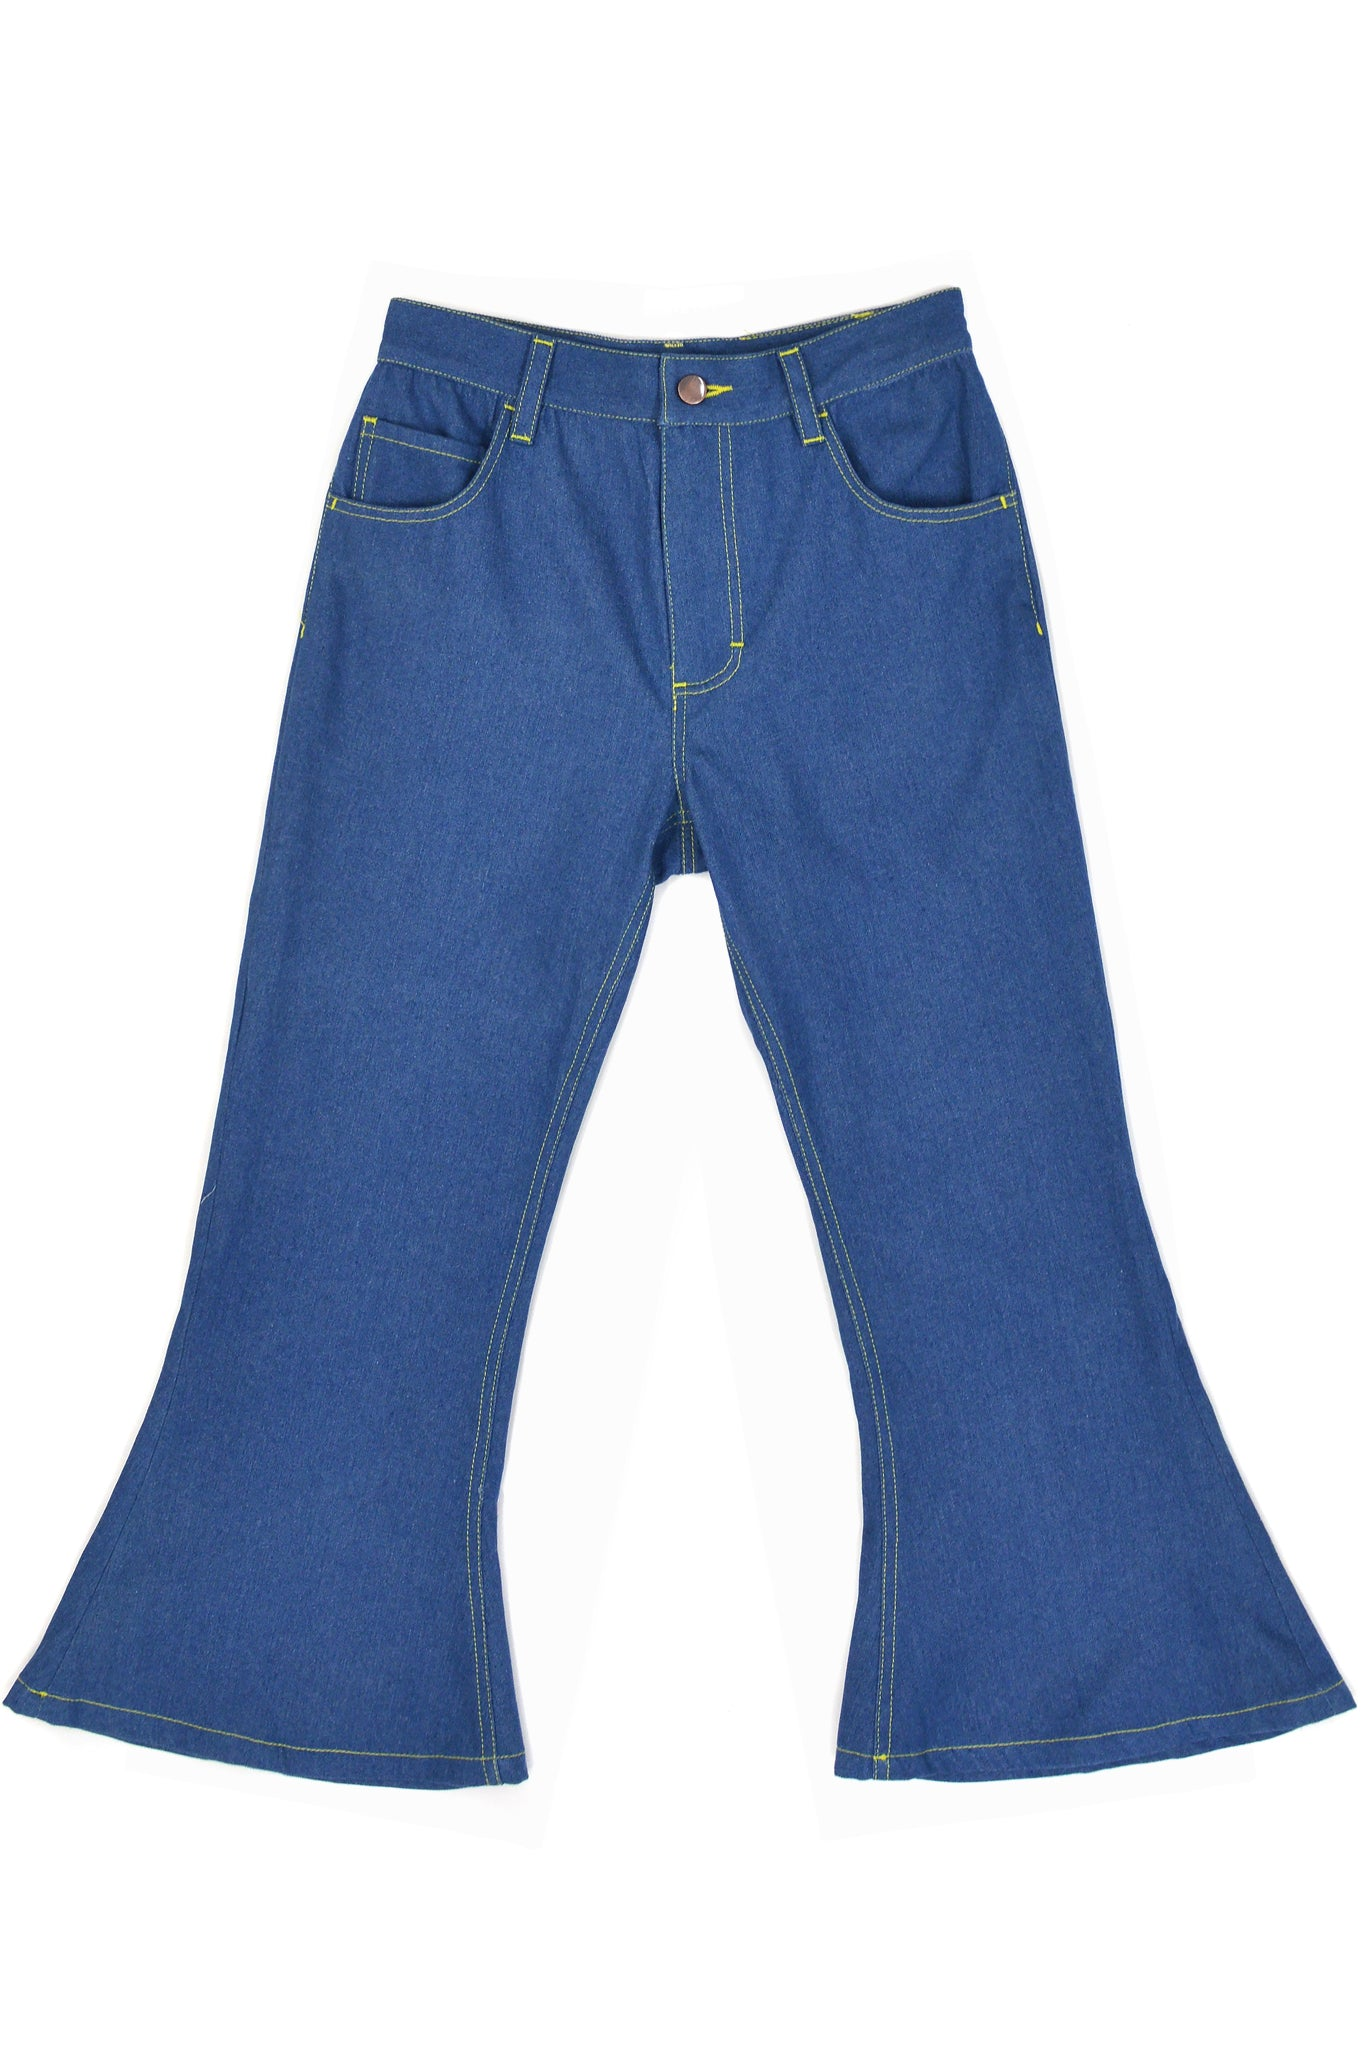 Hardeman Cropped Jeanious Jeans